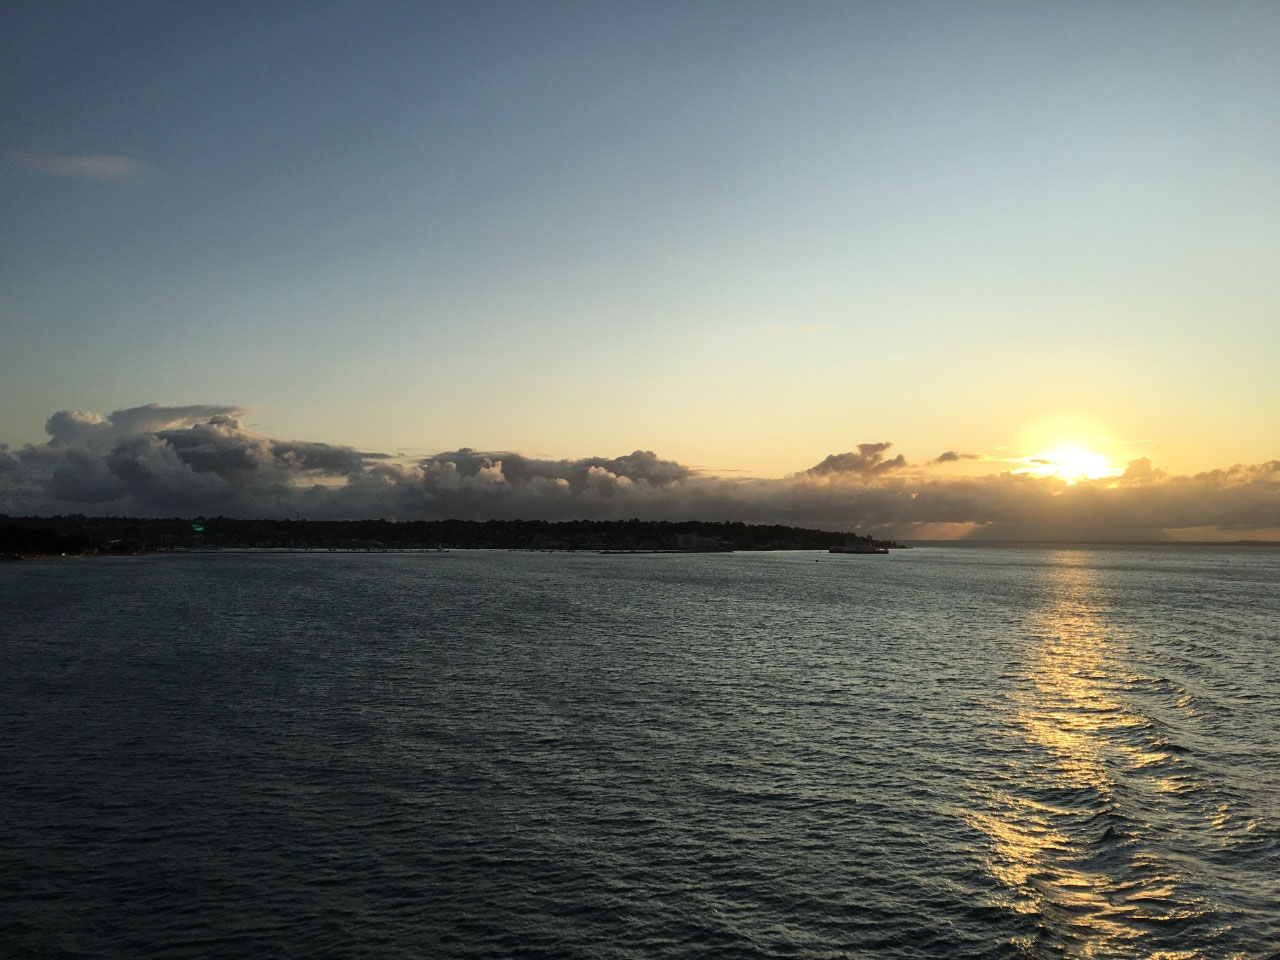 First cruise sunset